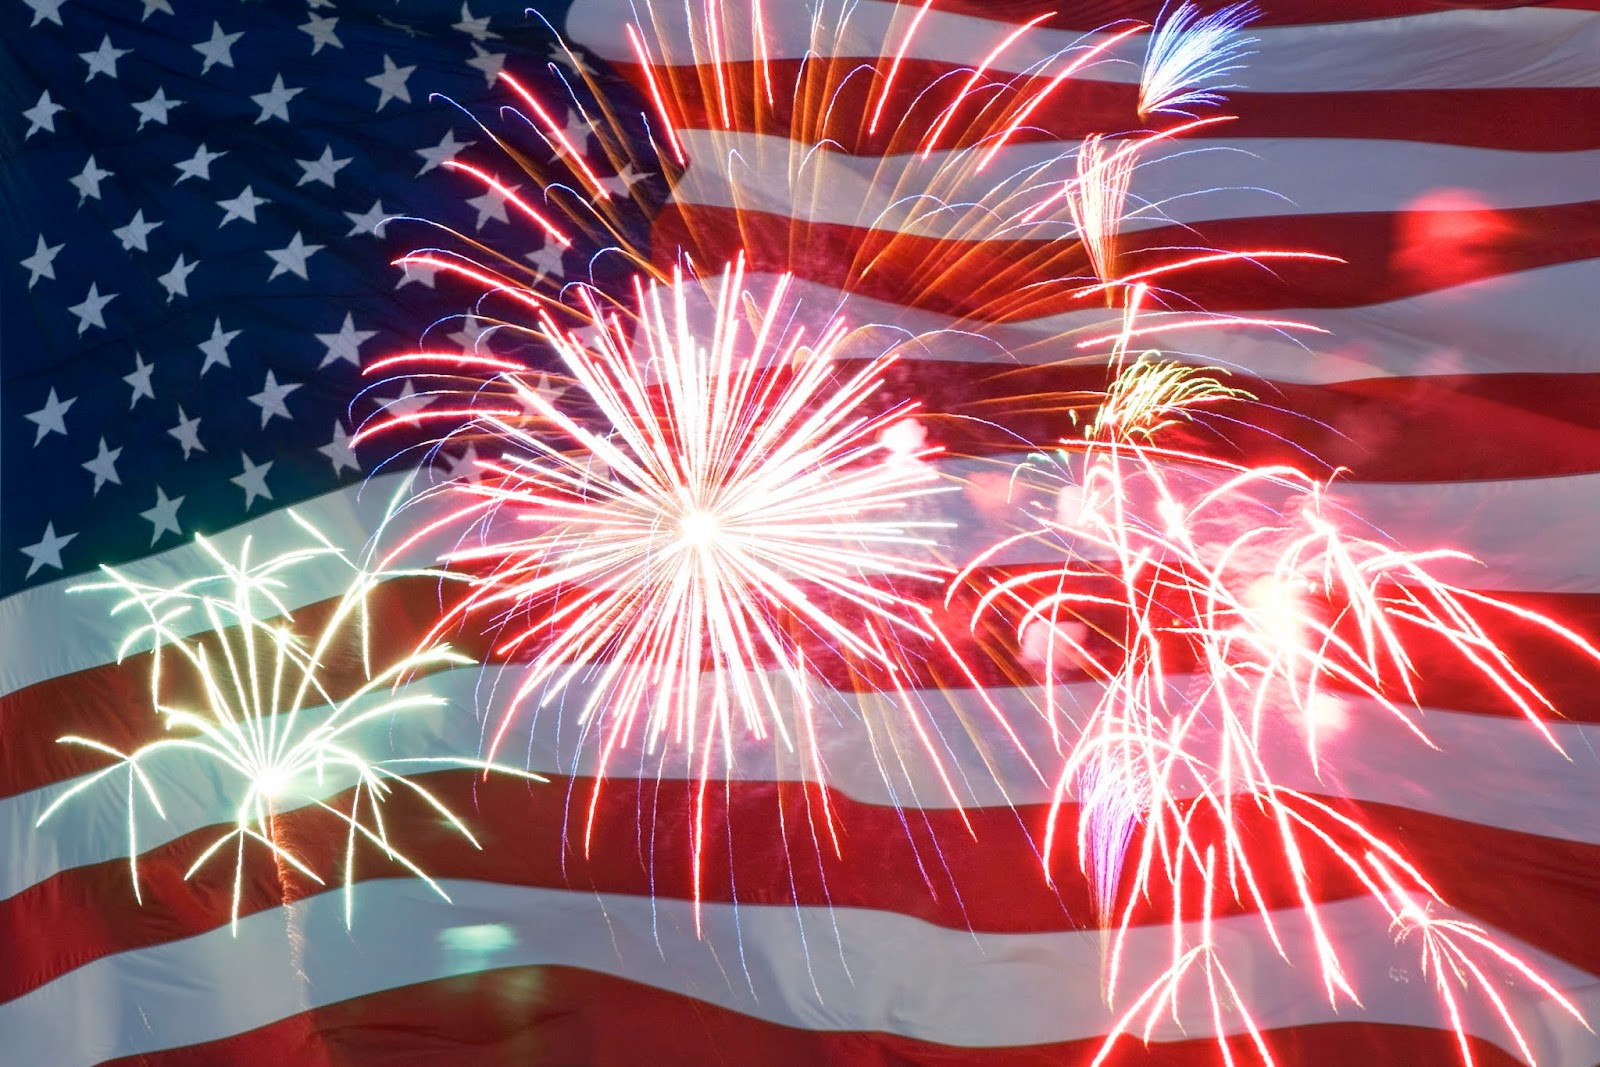 Happy 4th july ecard text messages greeting wishes images for What is celebrated on the 4th of july